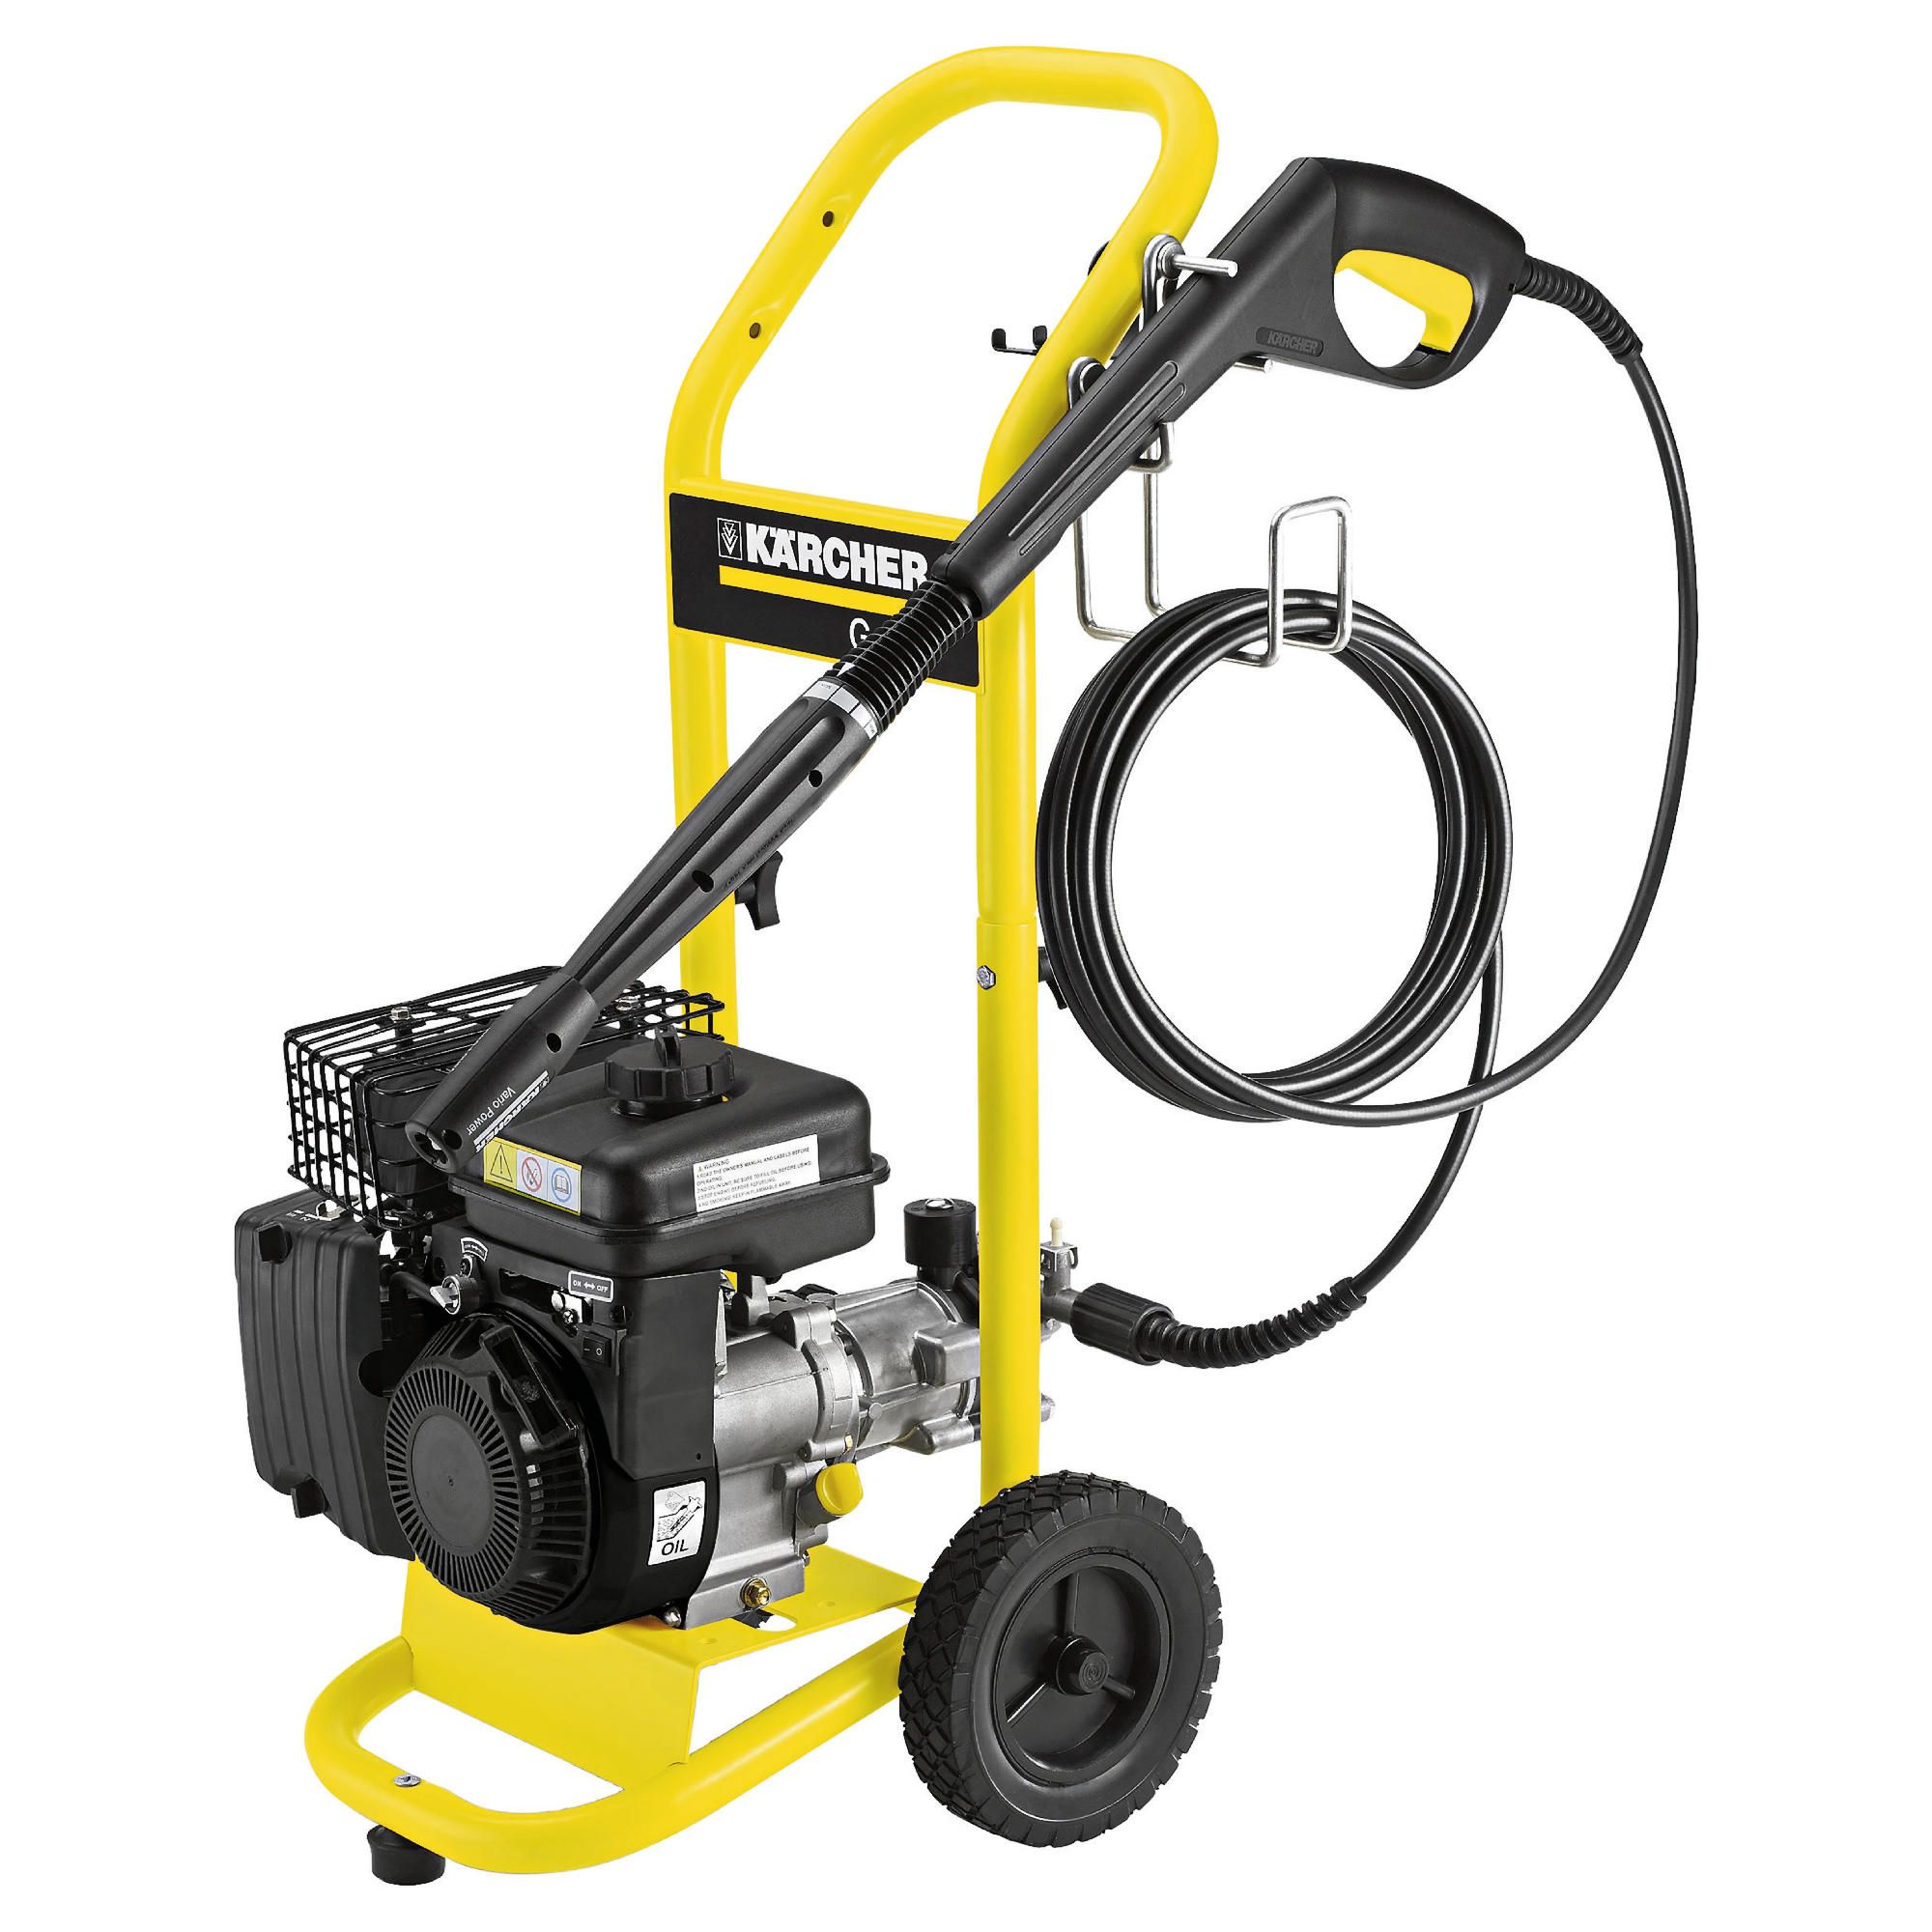 Karcher G4.10 Petrol Pressure Washer at Tesco Direct